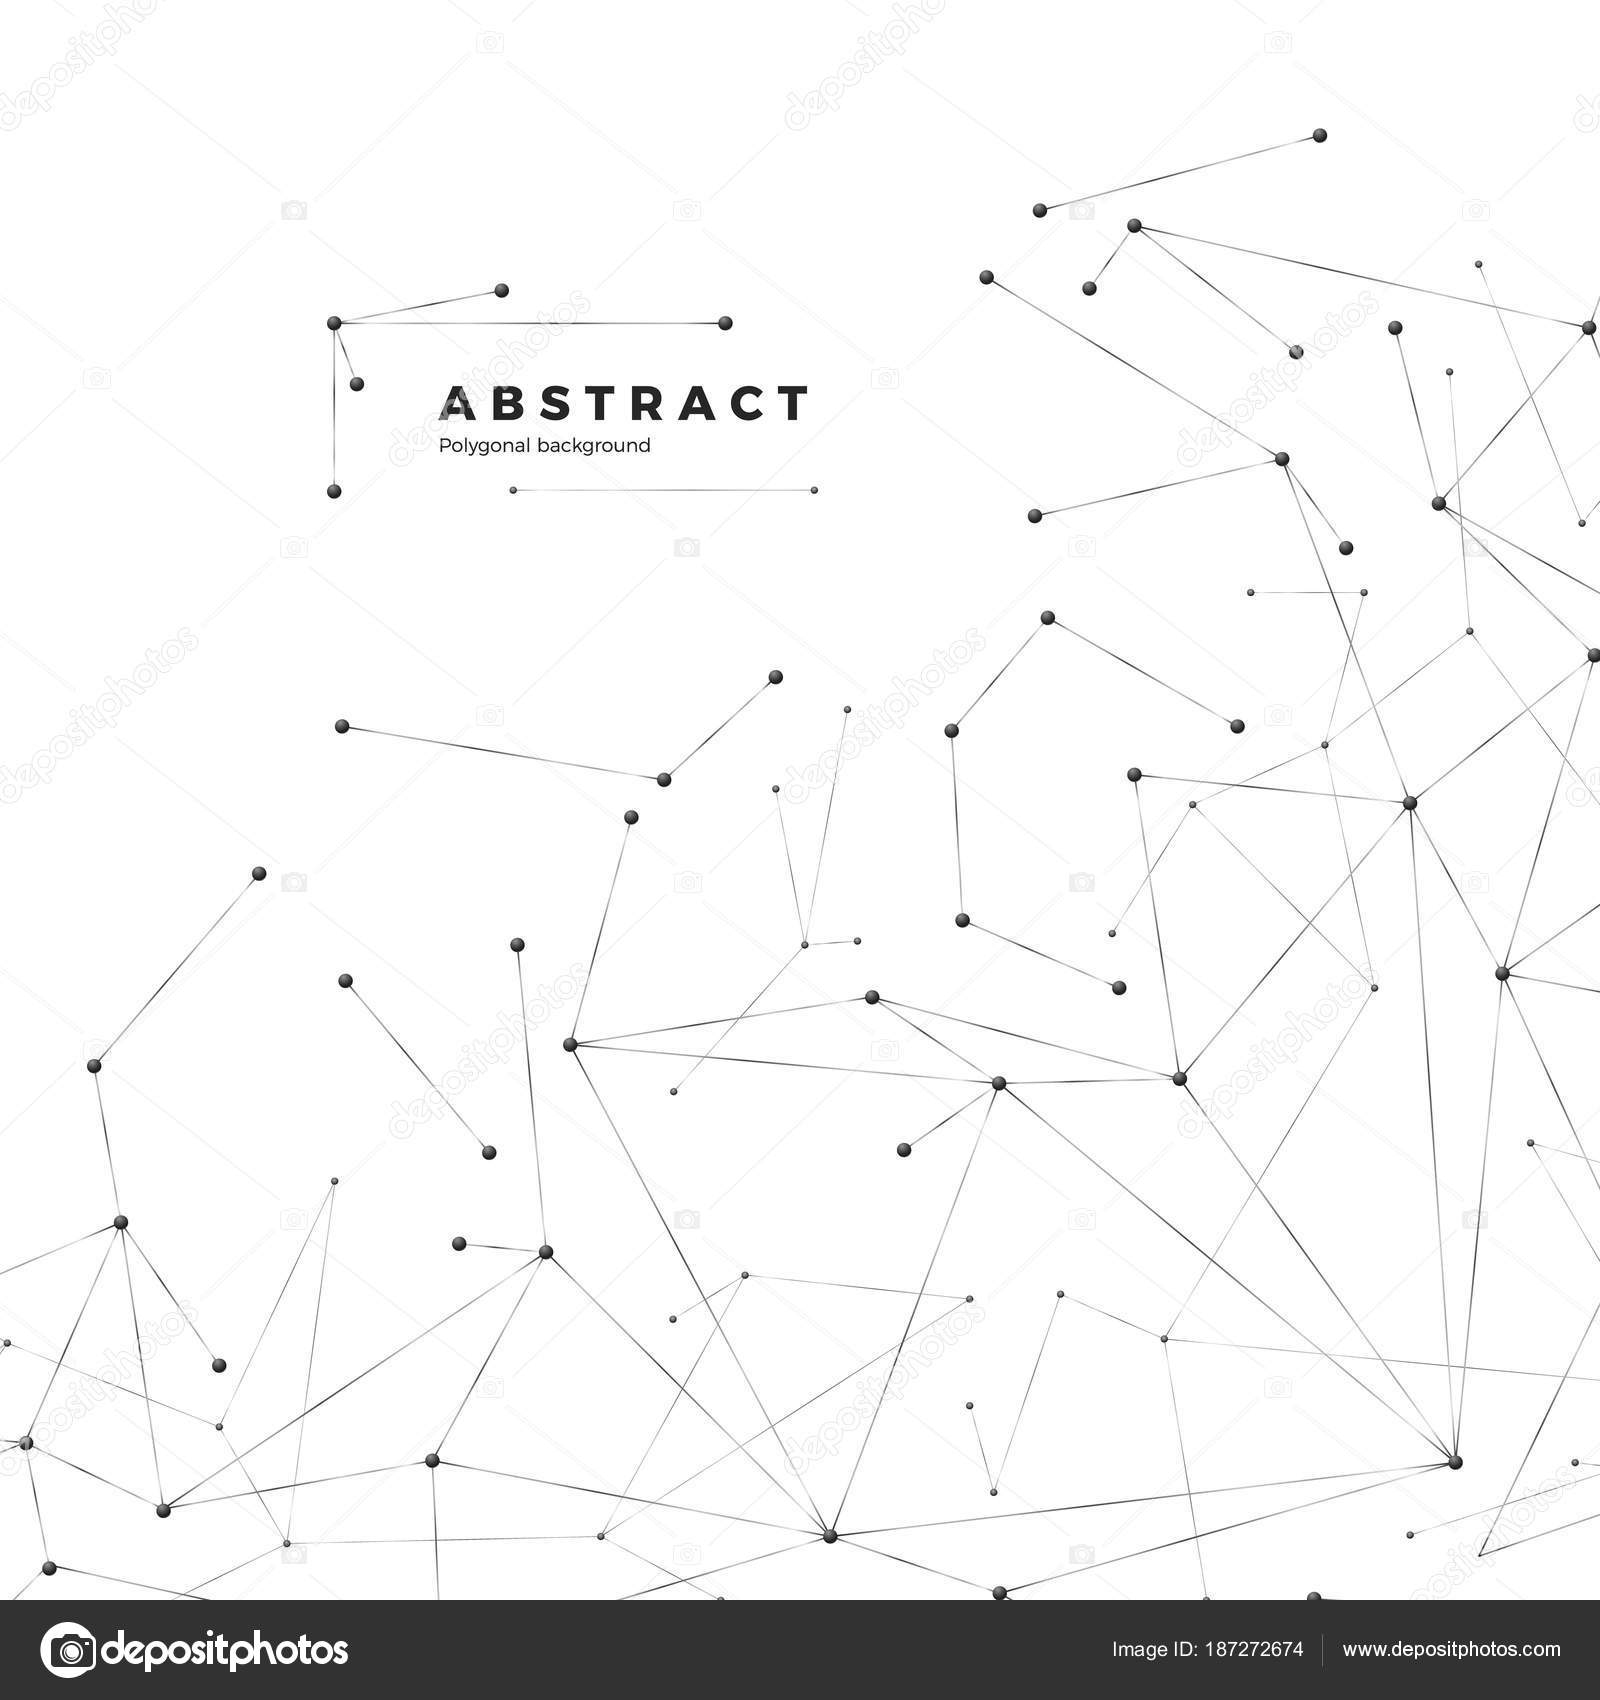 Technology and science background abstract web and nodes plexus technology and science background abstract web and nodes plexus atom structure vector illustration ccuart Images